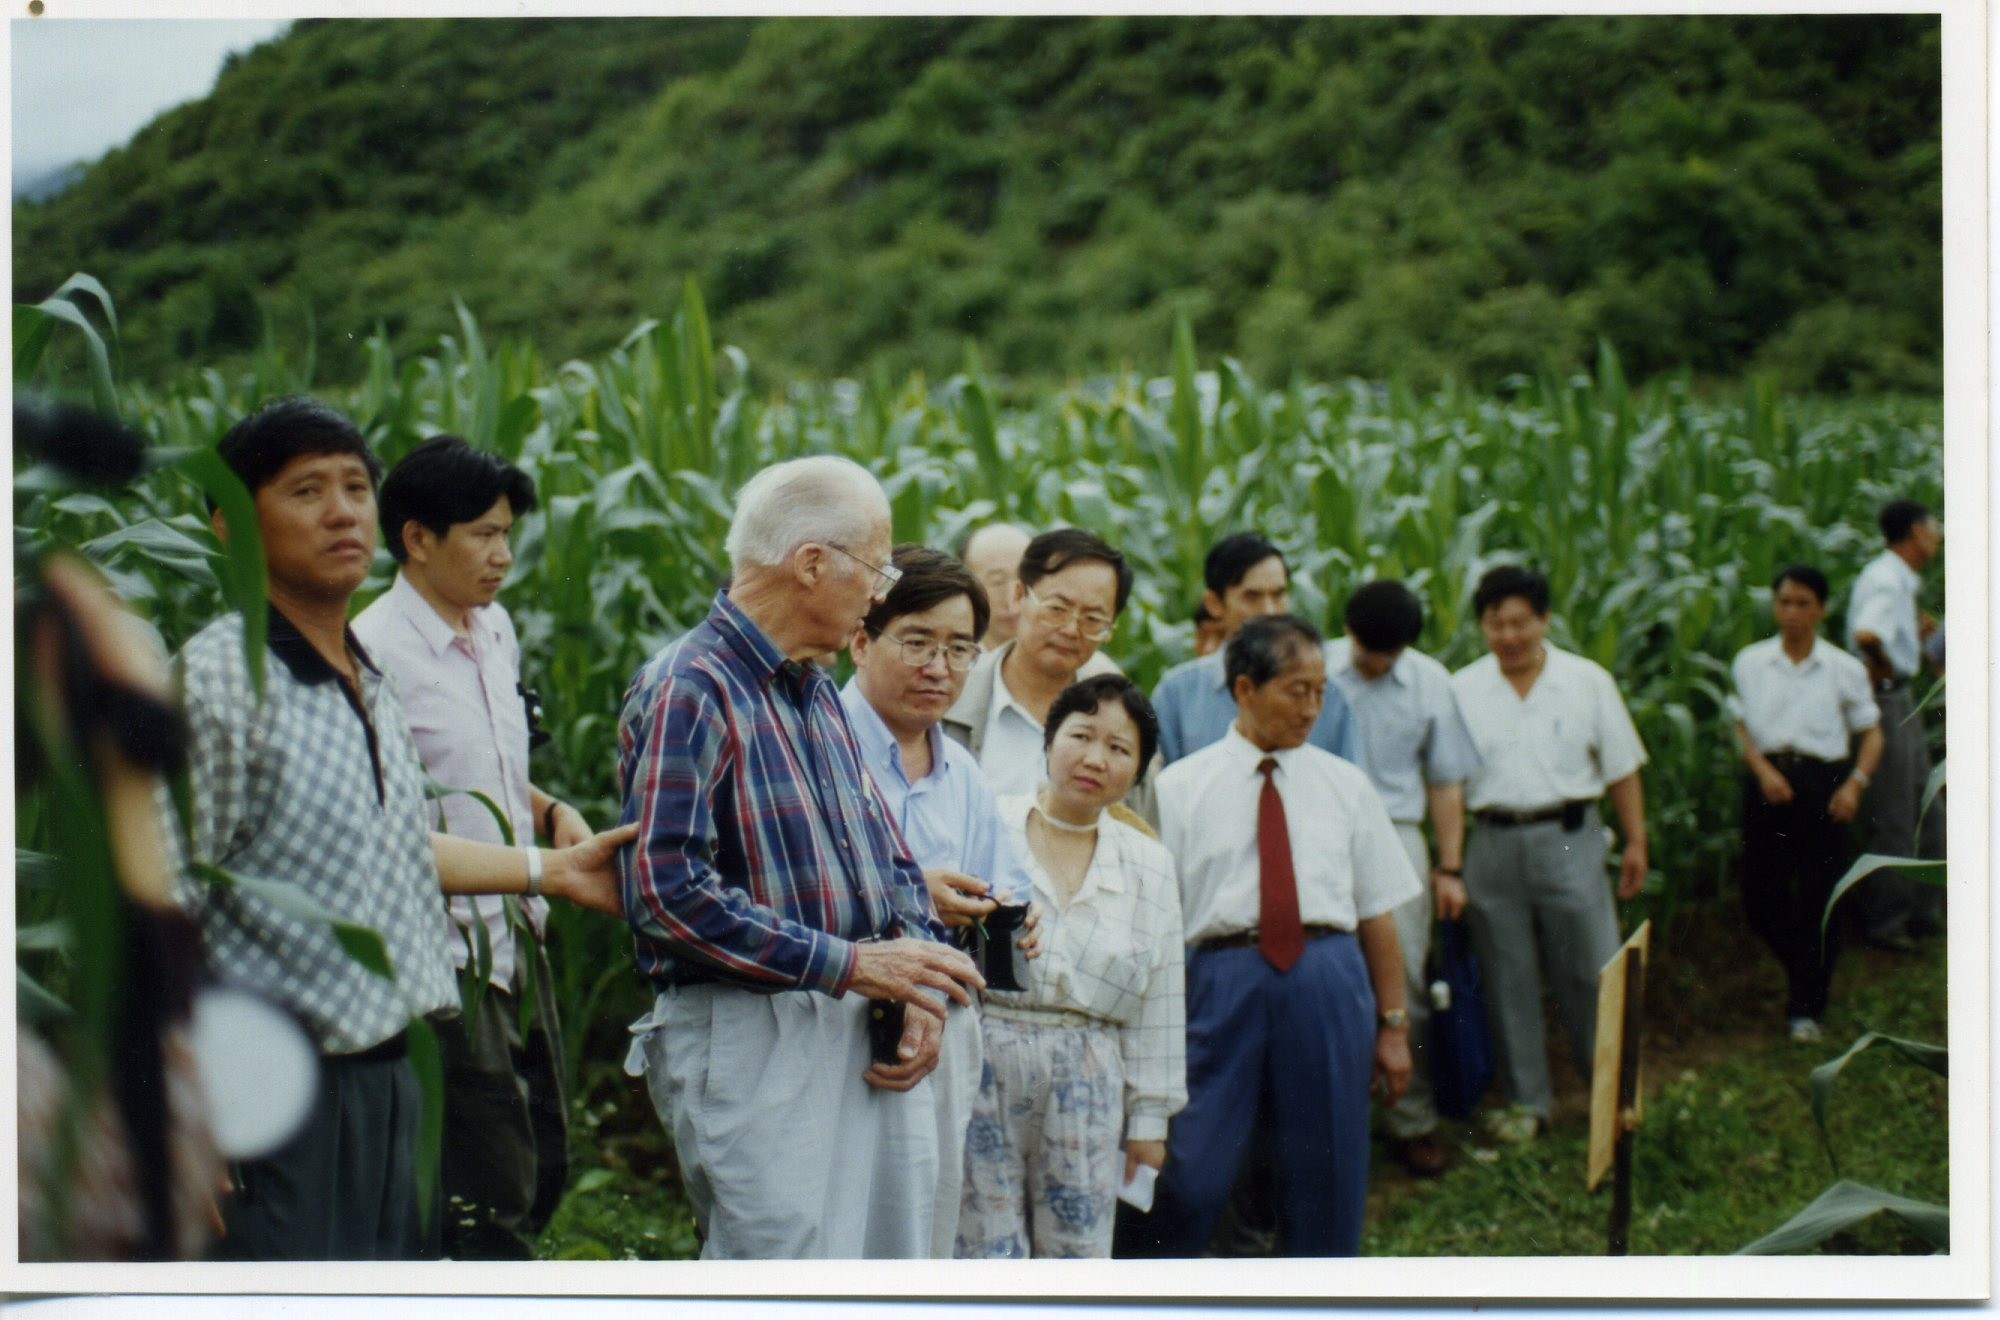 BORLAUG ATTEND QPM MAIZE FIELD IN GUIZHOU-bf3726c08c